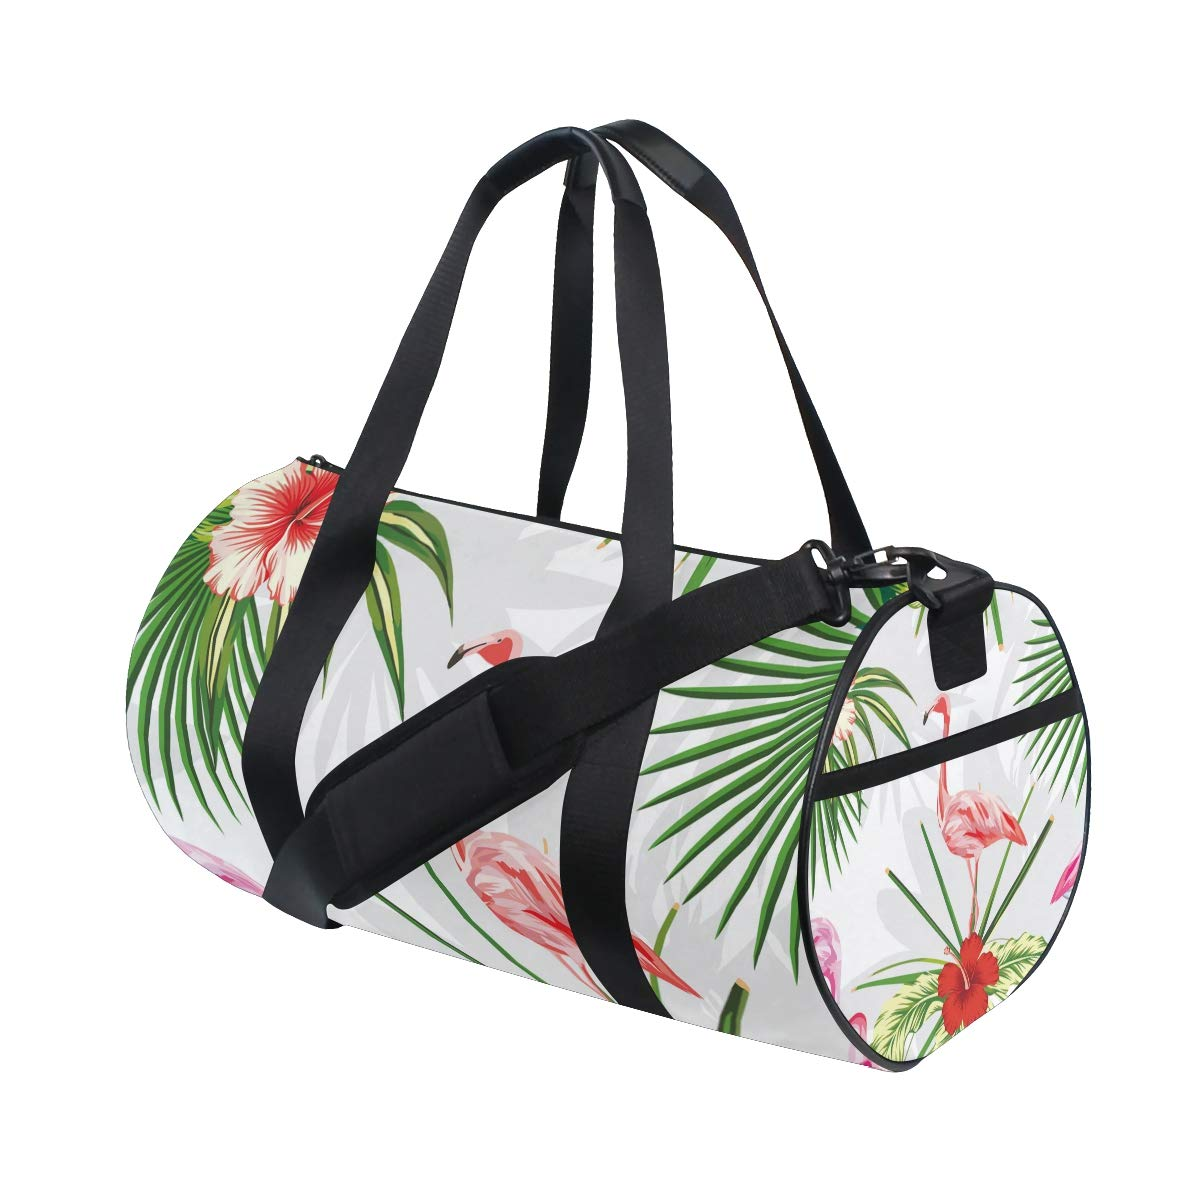 Flamingo Sports Gym Bag Travel Duffel Bag with Pockets Luggage & Travel Gear Shoulder Strap Fitness Bag